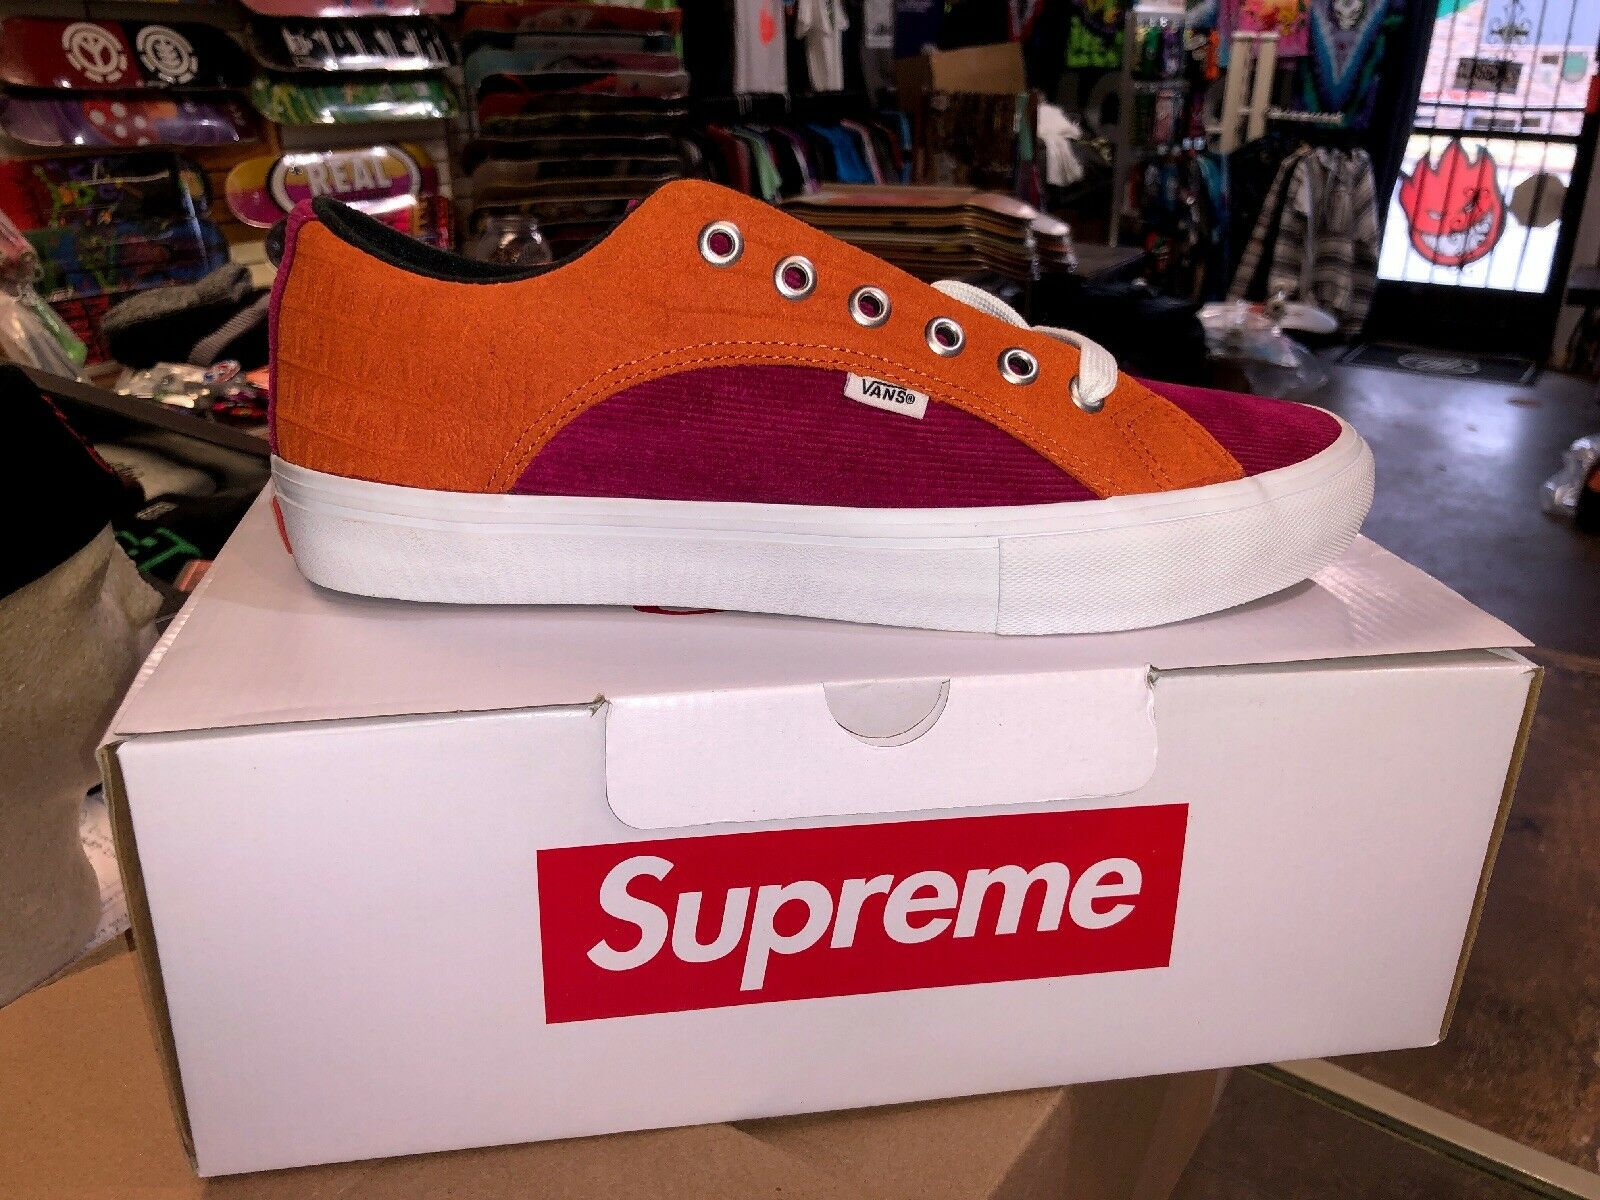 Supreme Vans Crocodile Corduroy Lampin Rust orange CROC SUEDE Size 11 New In Box